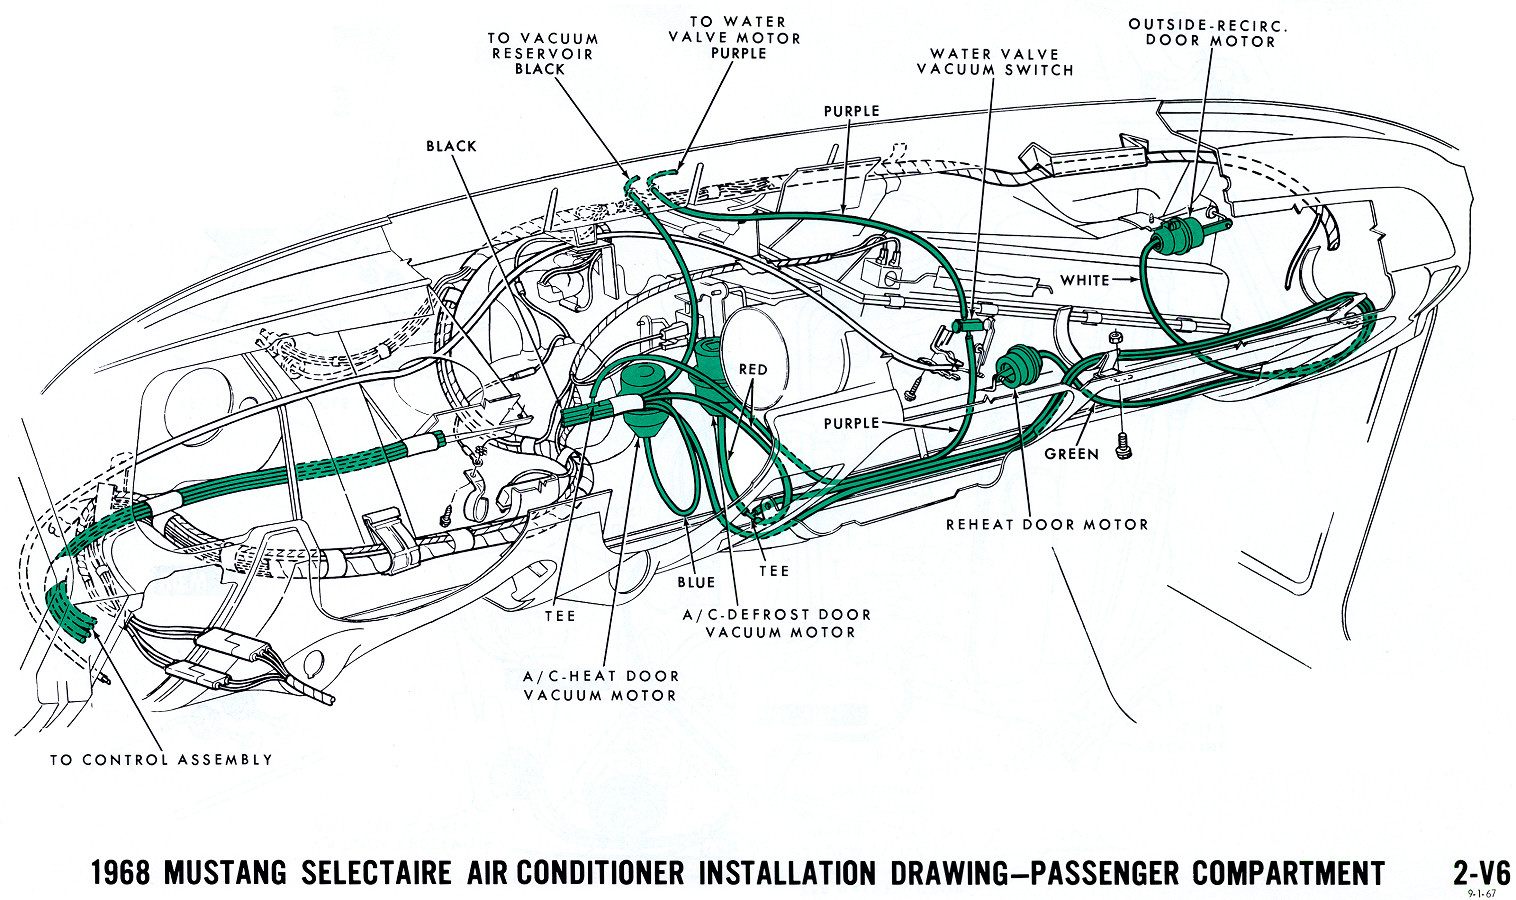 68 Mustang Dash Wiring Diagram Library Moreover Mercruiser On Chevy Alternator 1968 Vacuum Air Conditioning Interior